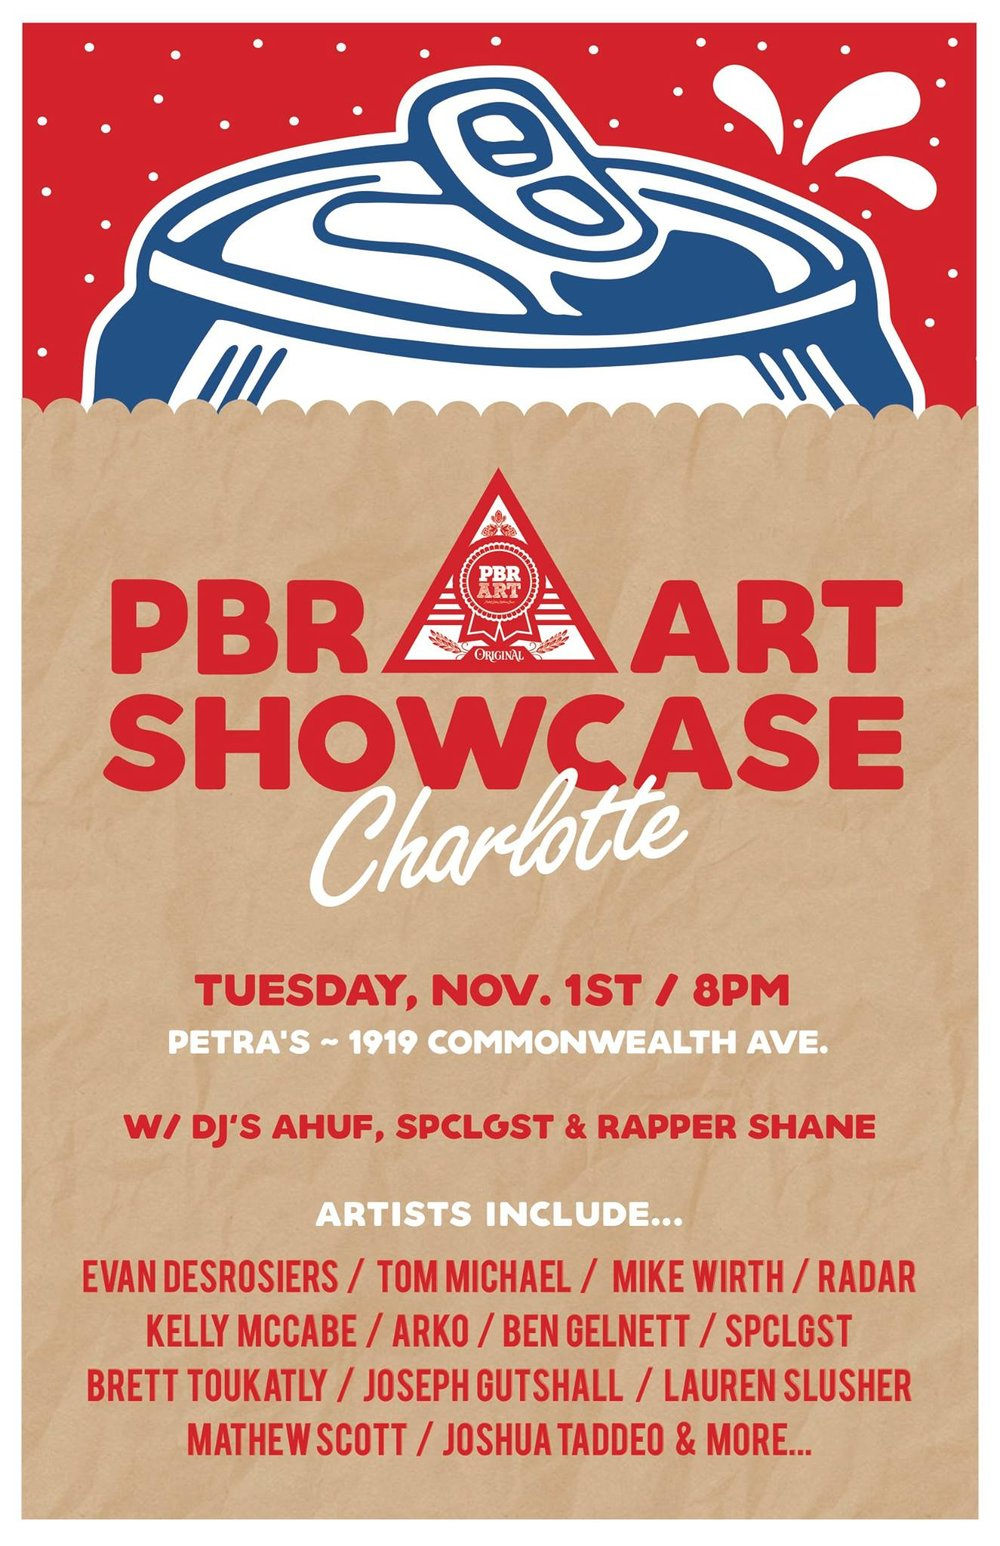 PLEASE COME CHECK OUT SOME AMAZING LOCAL ARTISTS THIS COMING TUESDAY!!